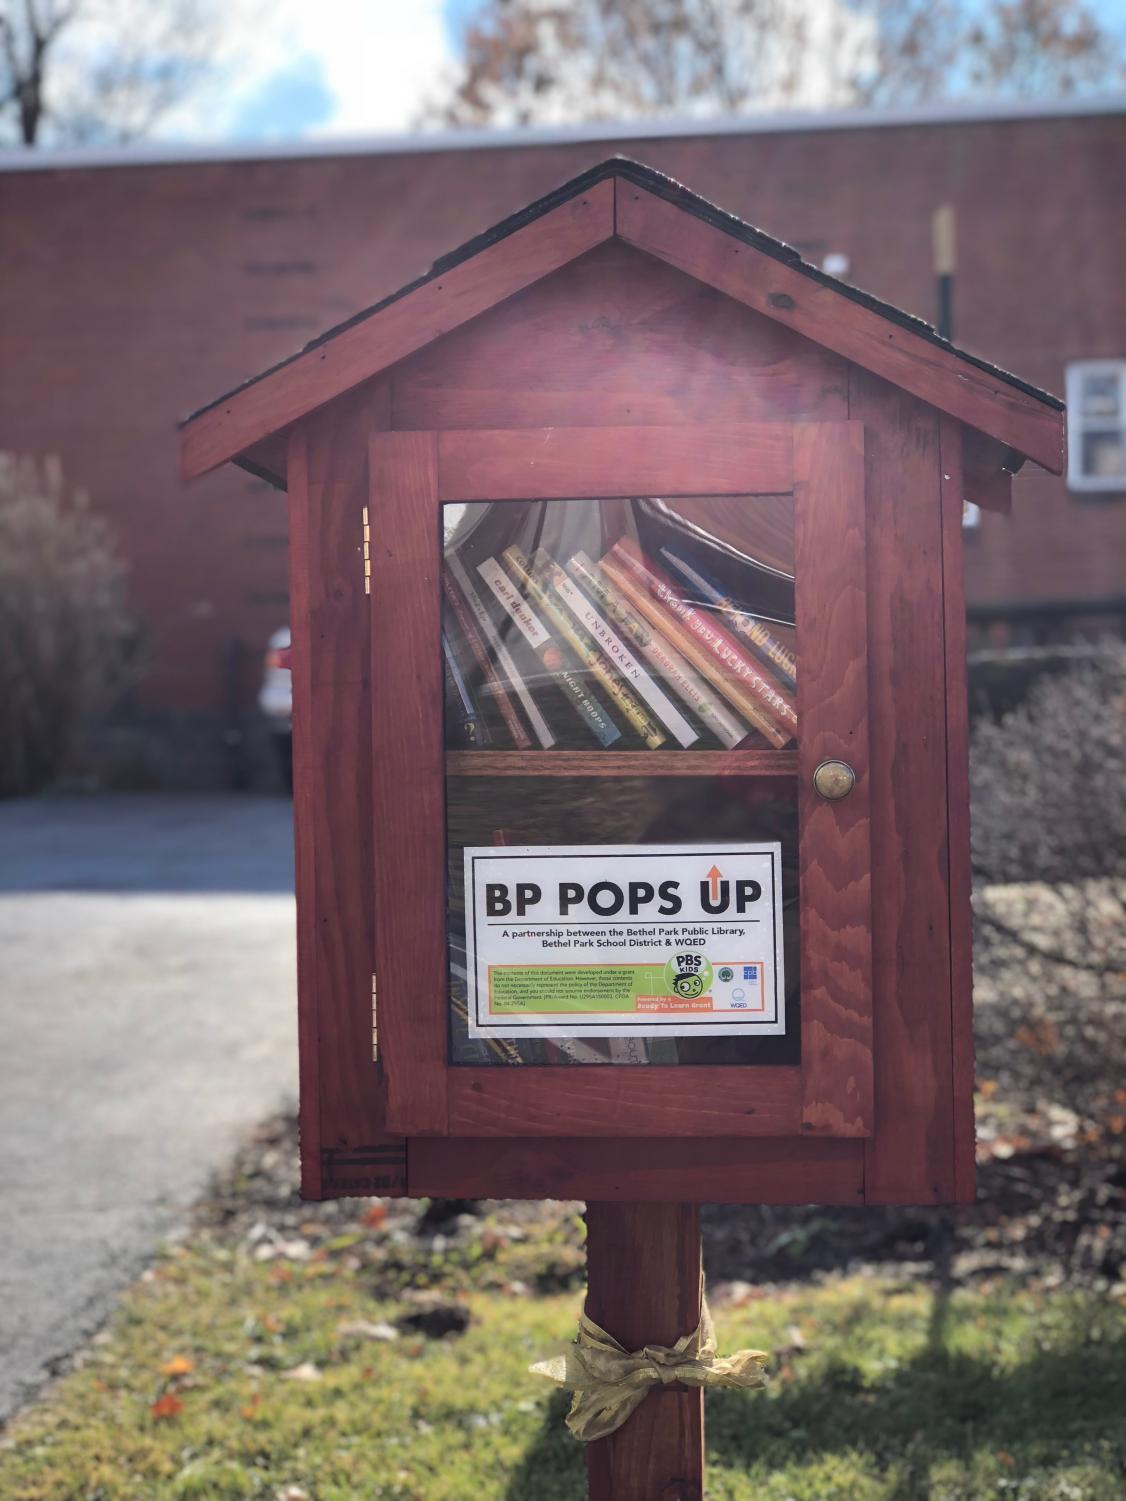 A pop-up box located on South Park Rd. at SHIM.